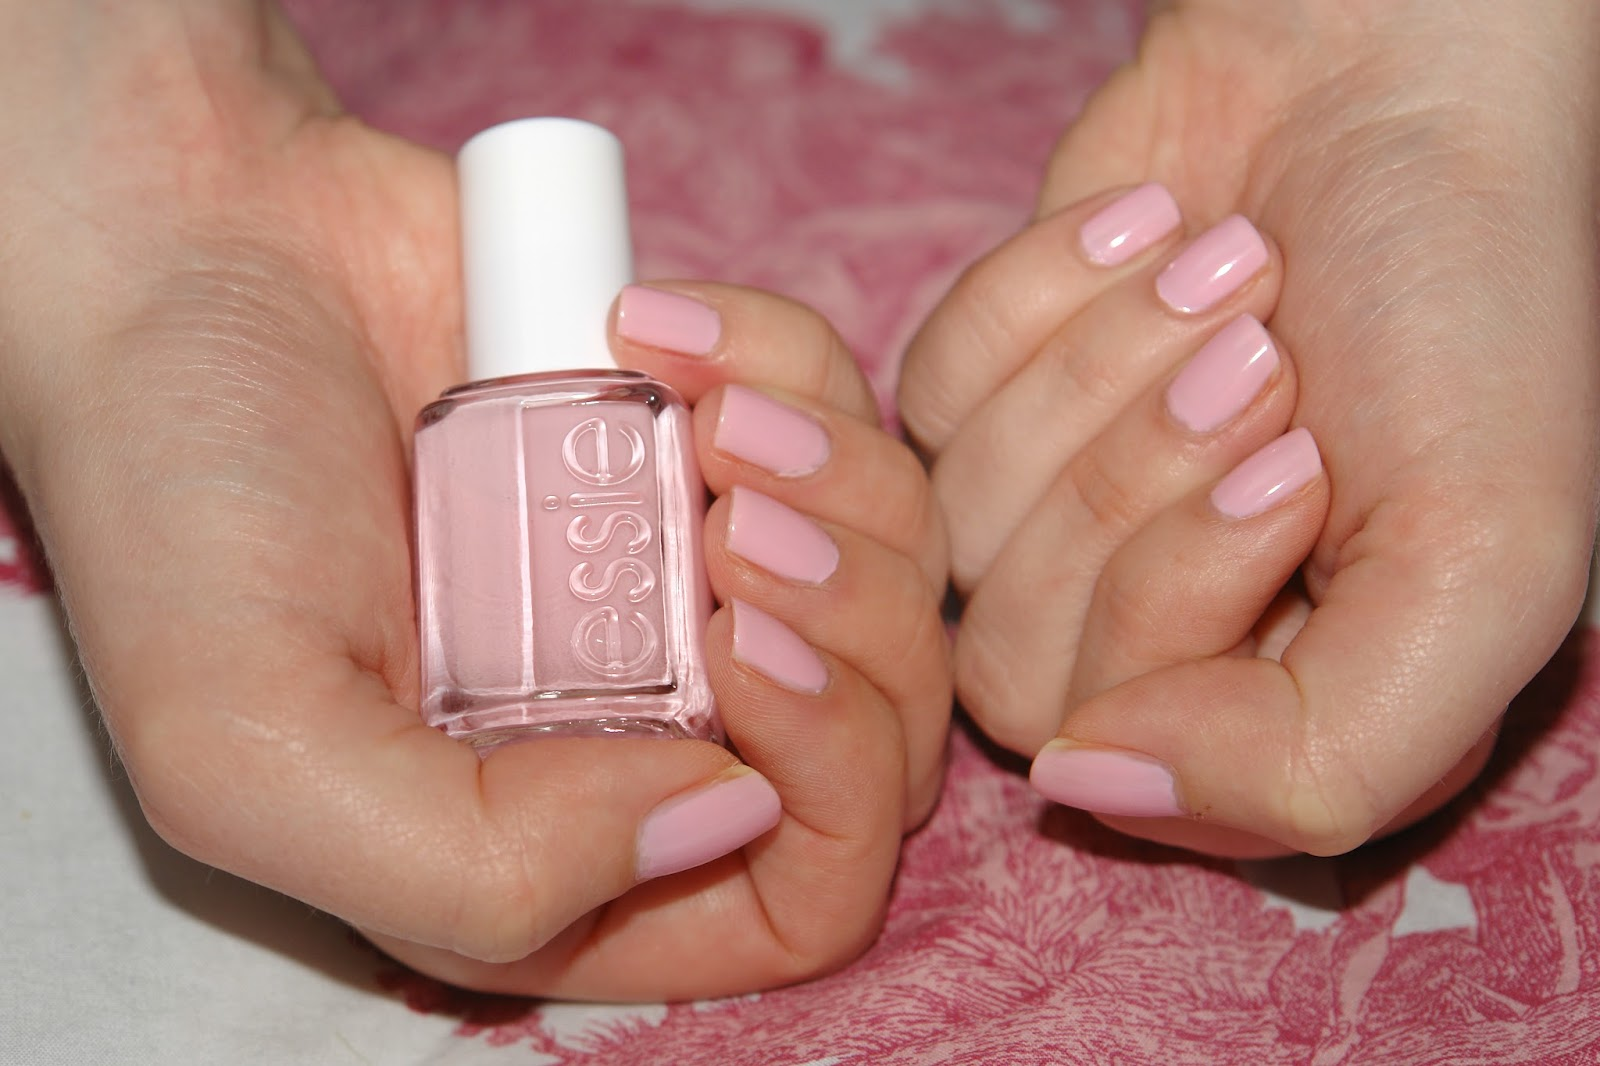 NAILS: Essie Guchi Muchi Puchi, Essie, nail polish, nails, NOTD, pink, review, beauty blog